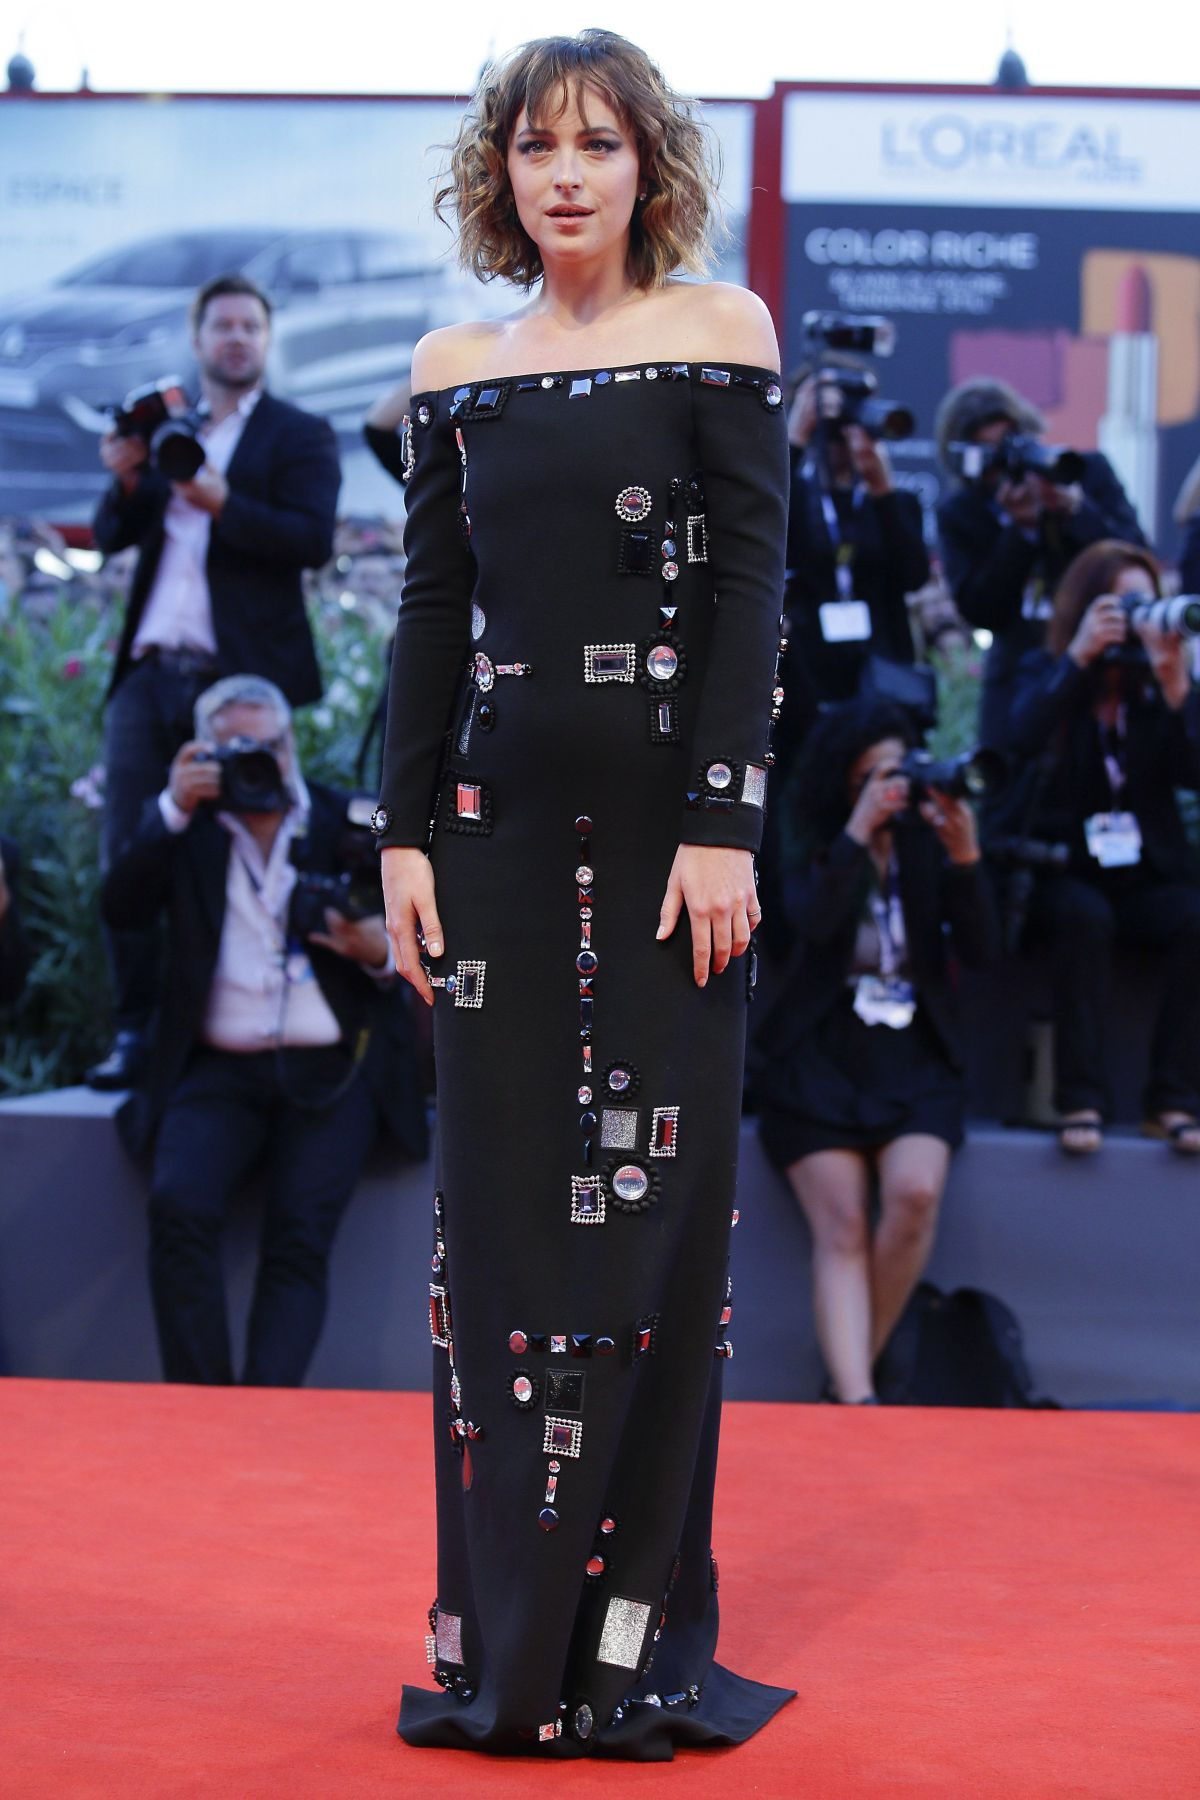 dakota-johnson-at-bigger-splash-premiere-at-72nd-venice-film-festival-09-06-2015_1-1